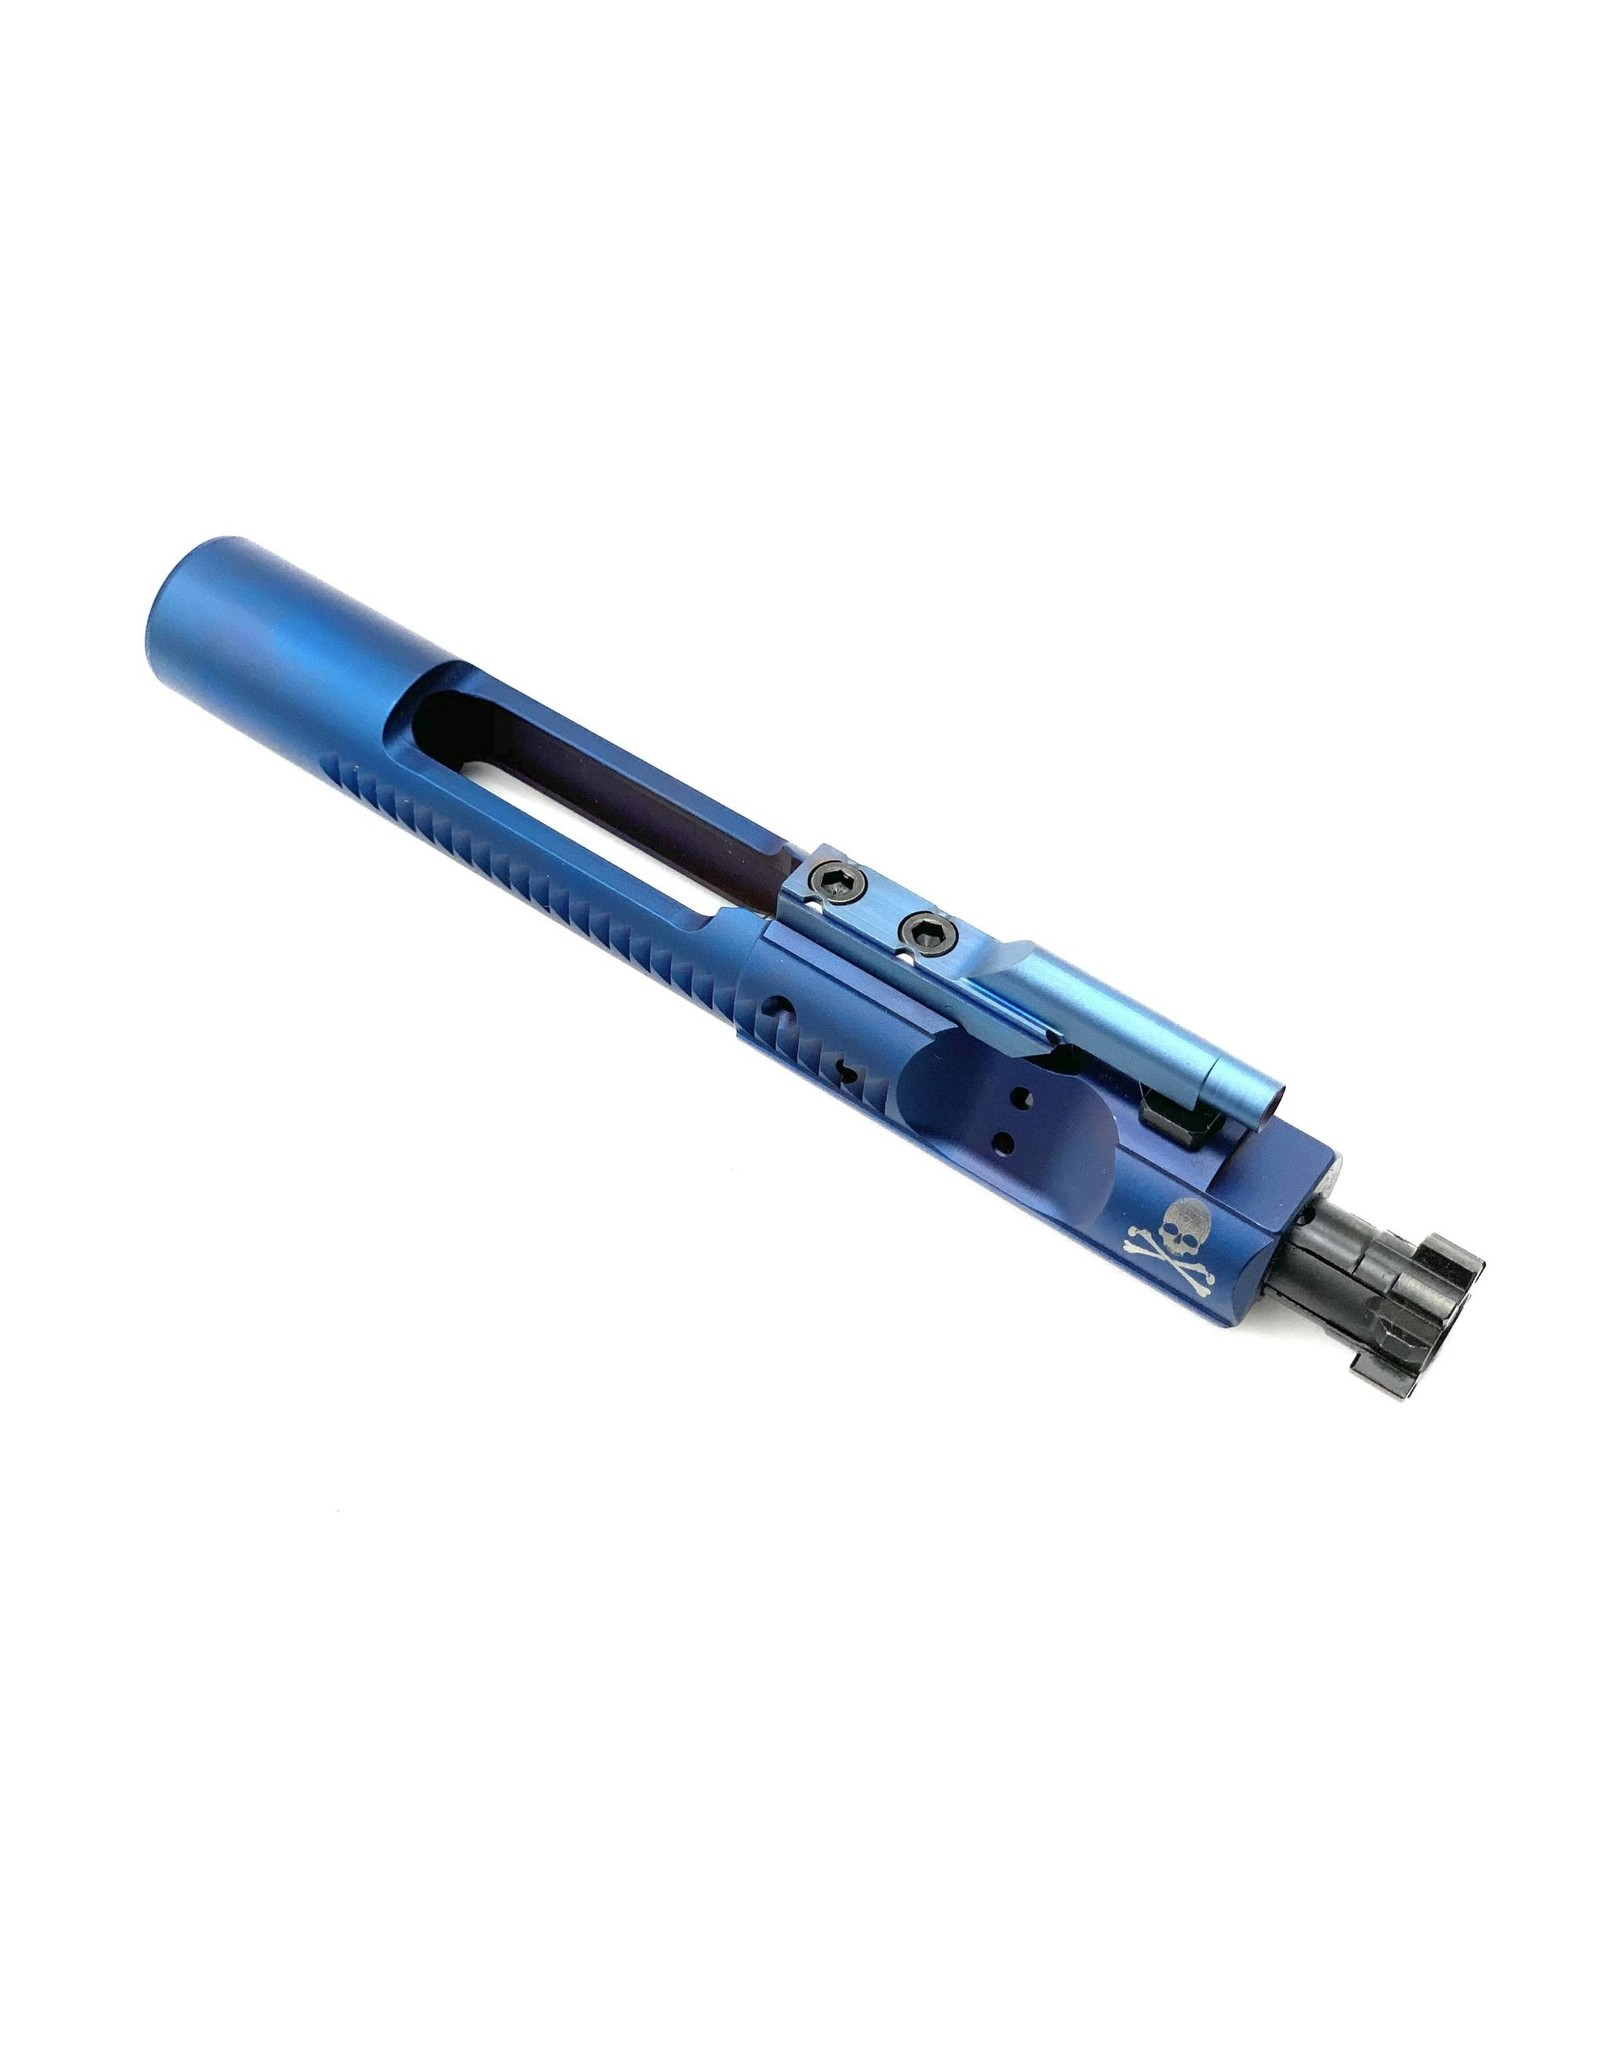 SDT 5.56/300 BLK Bolt Carrier Group (BCG) - PVD Blue